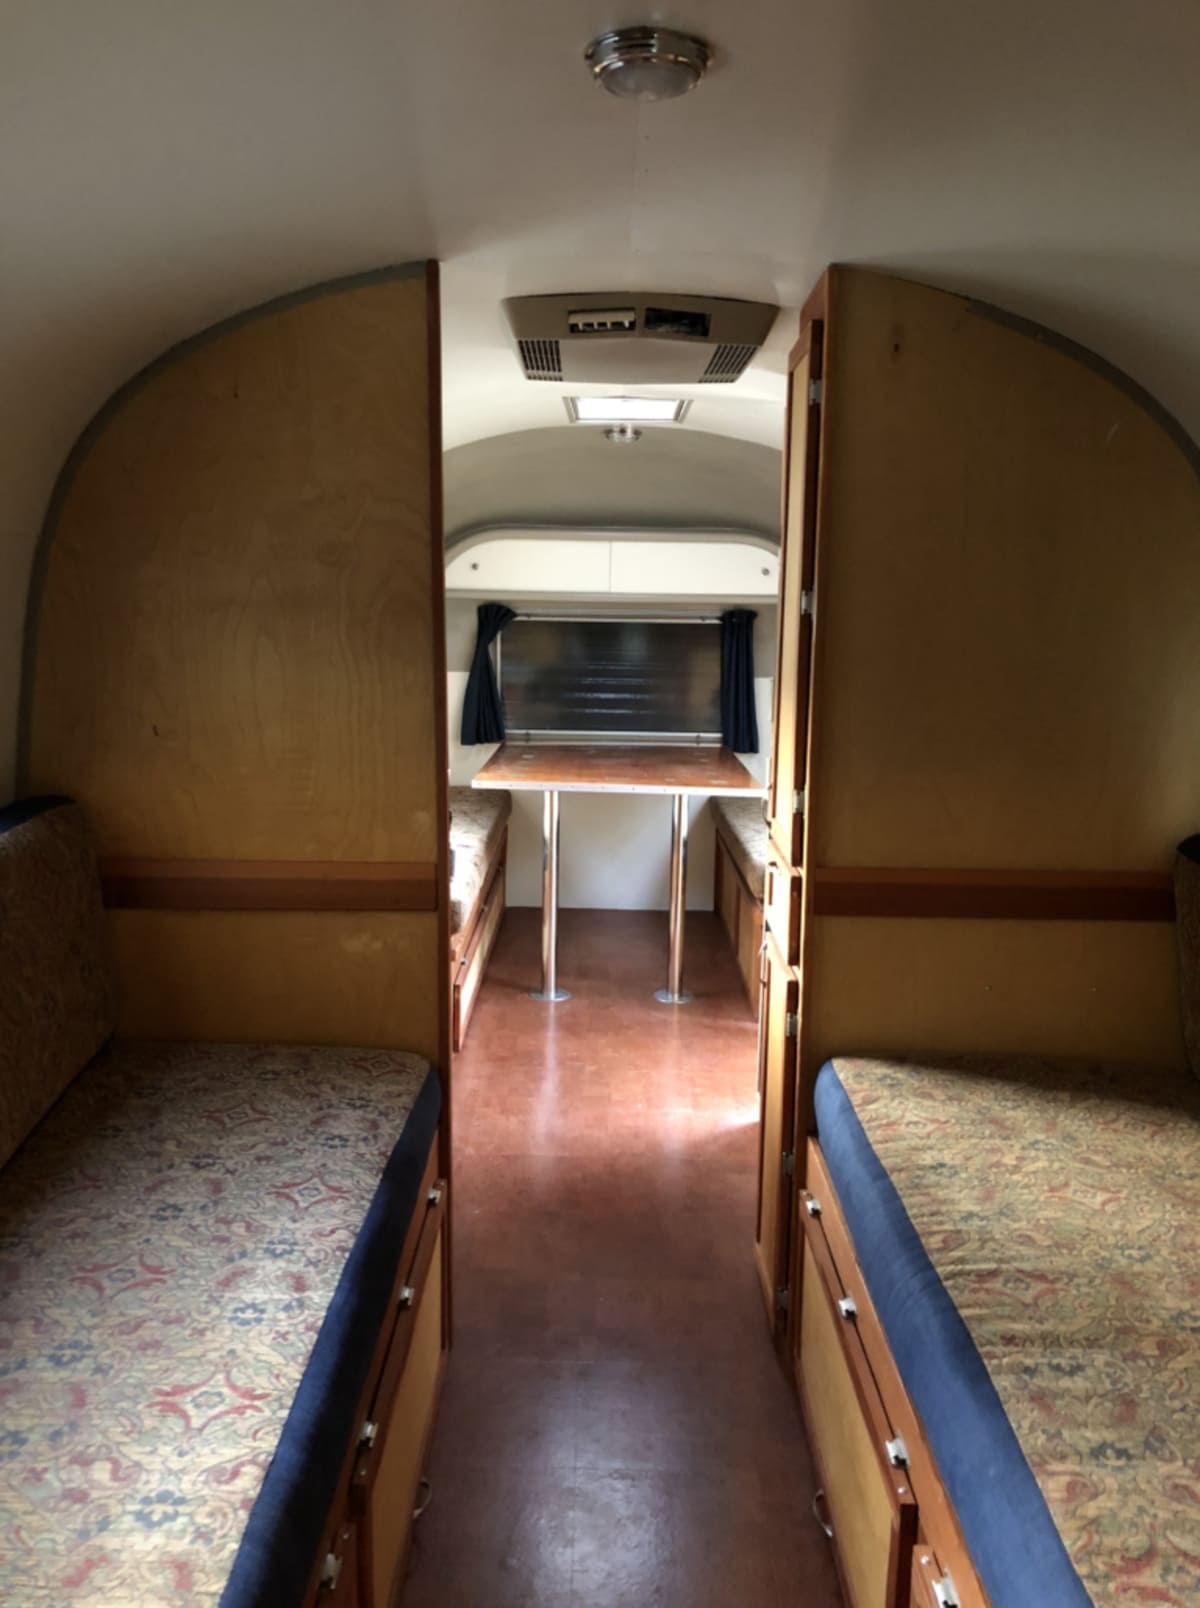 Screen Shot 2020 11 04 at 4.55.10 PM 768x1029 1 - This renovated Airstream trailer is all floral and boho-chic charm